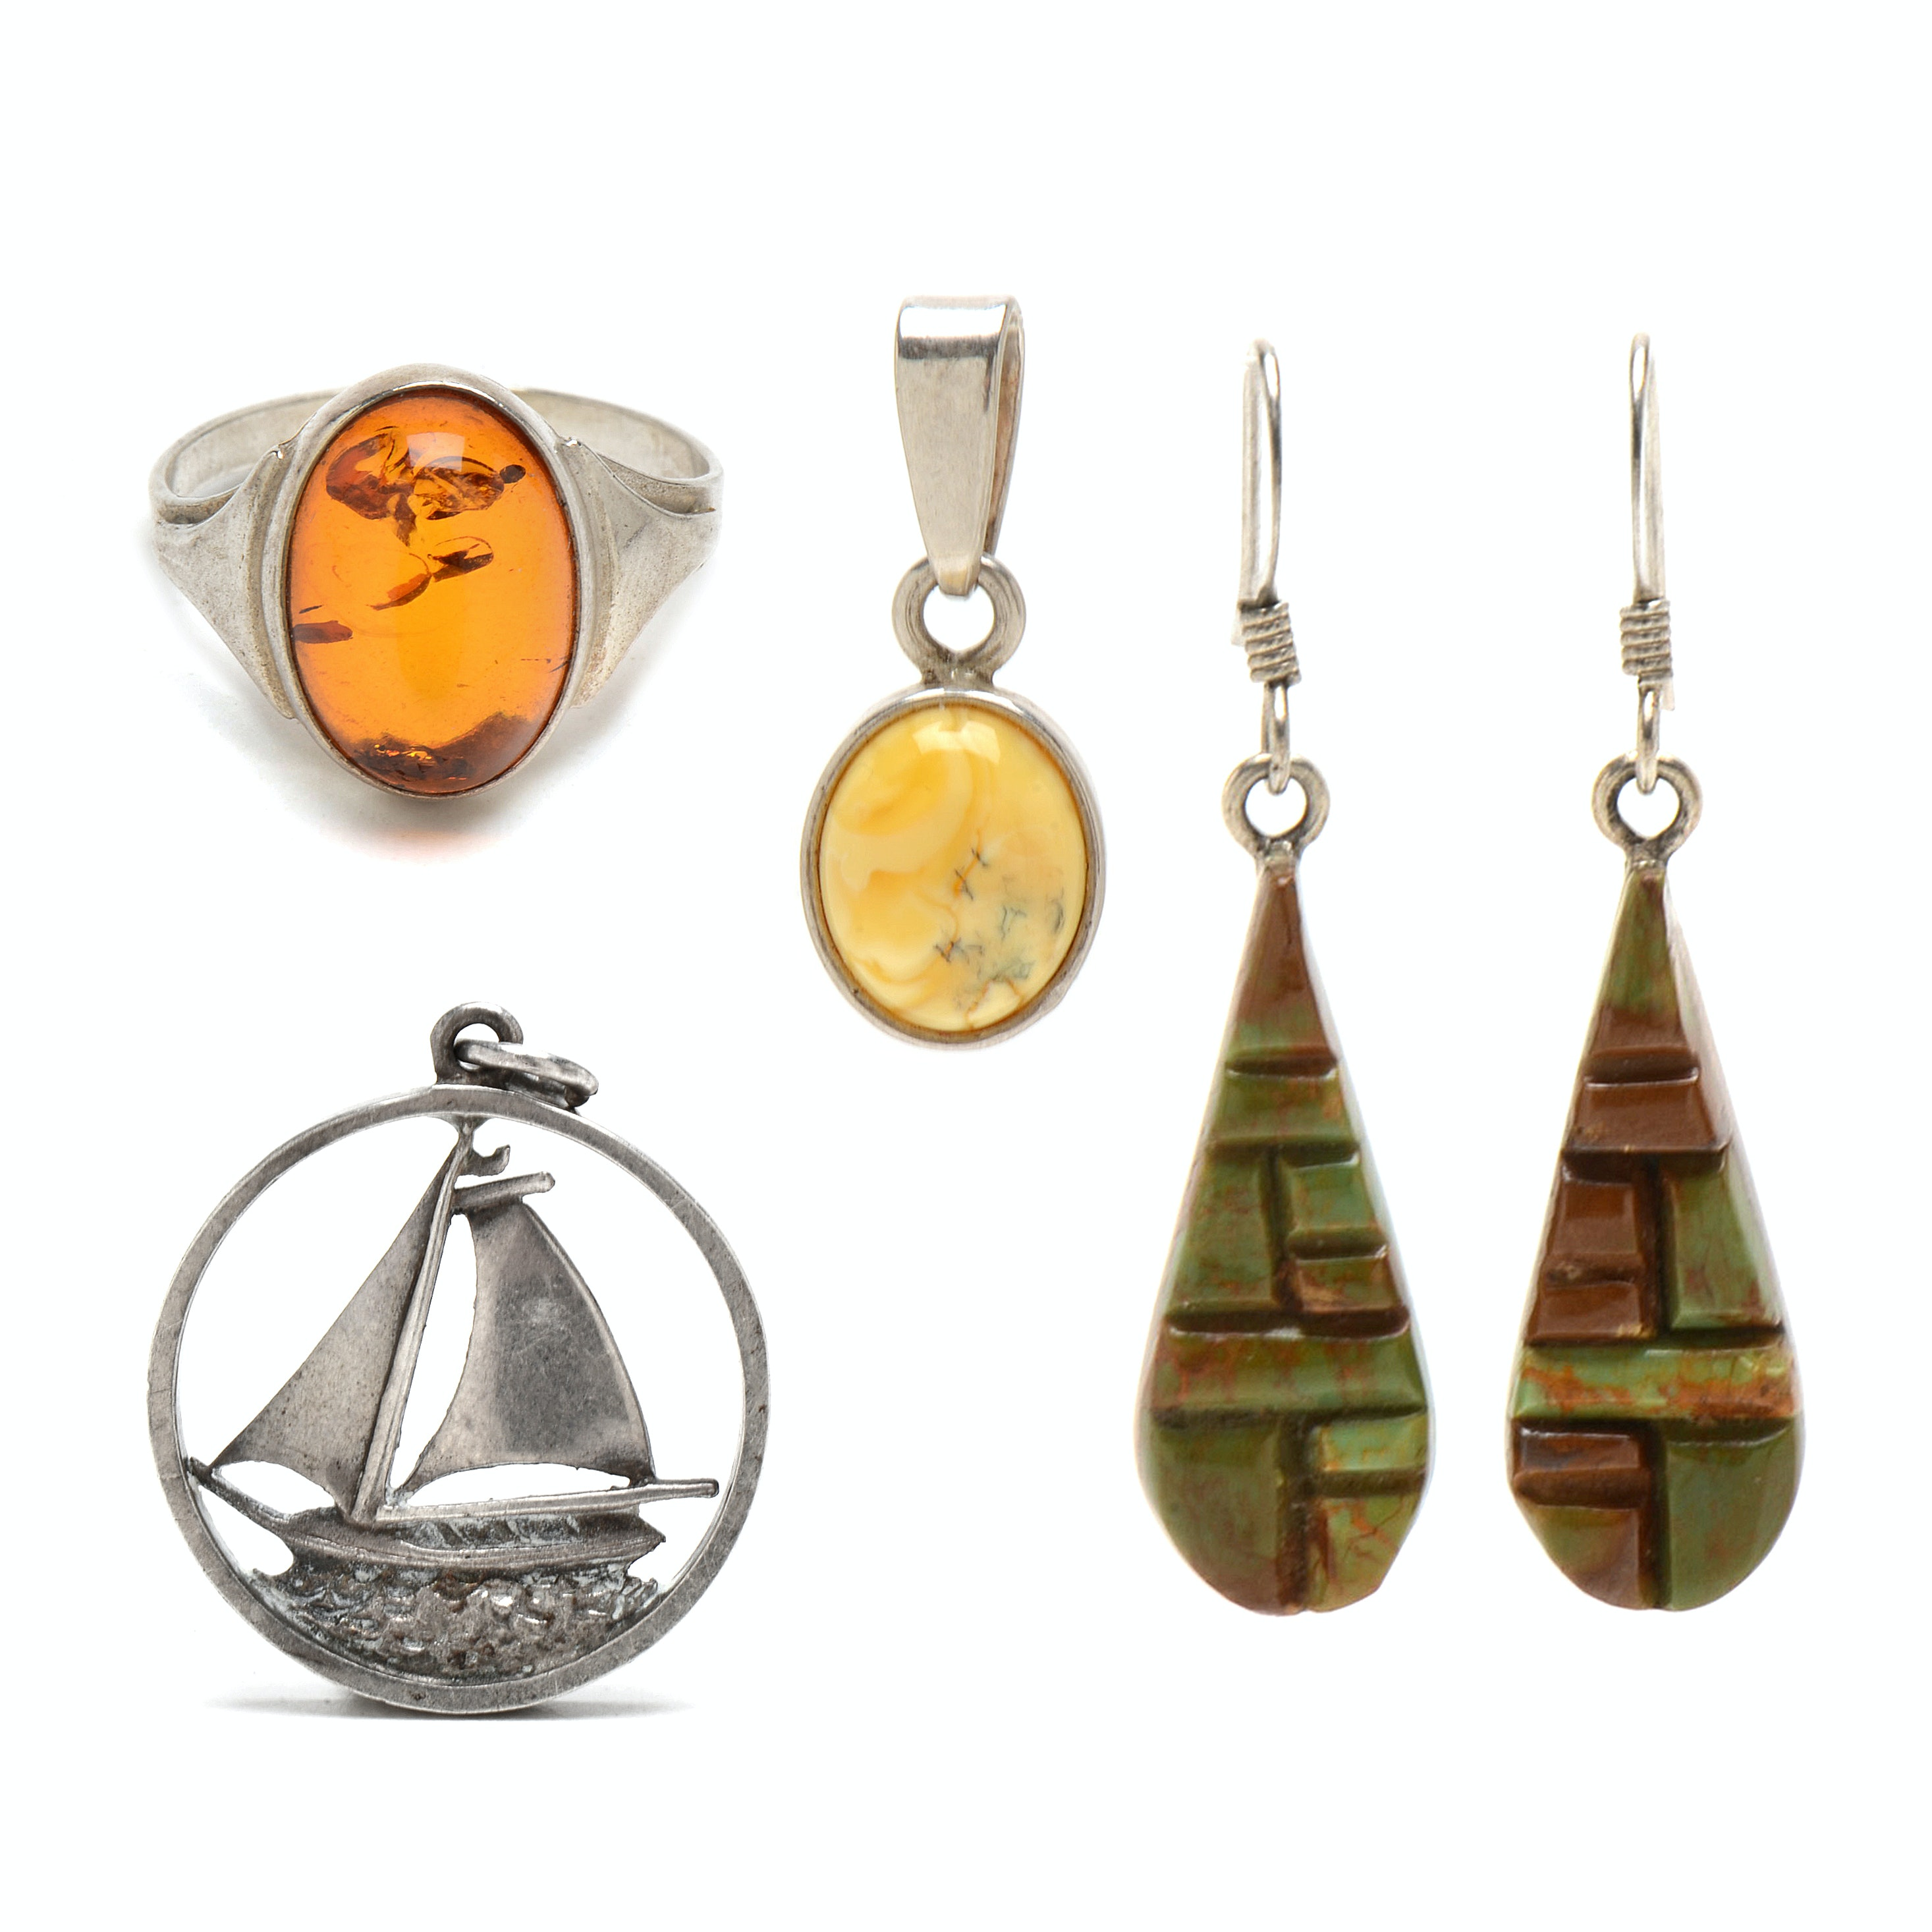 Collection of Sterling Silver Jewelry with Amber and Turquoise